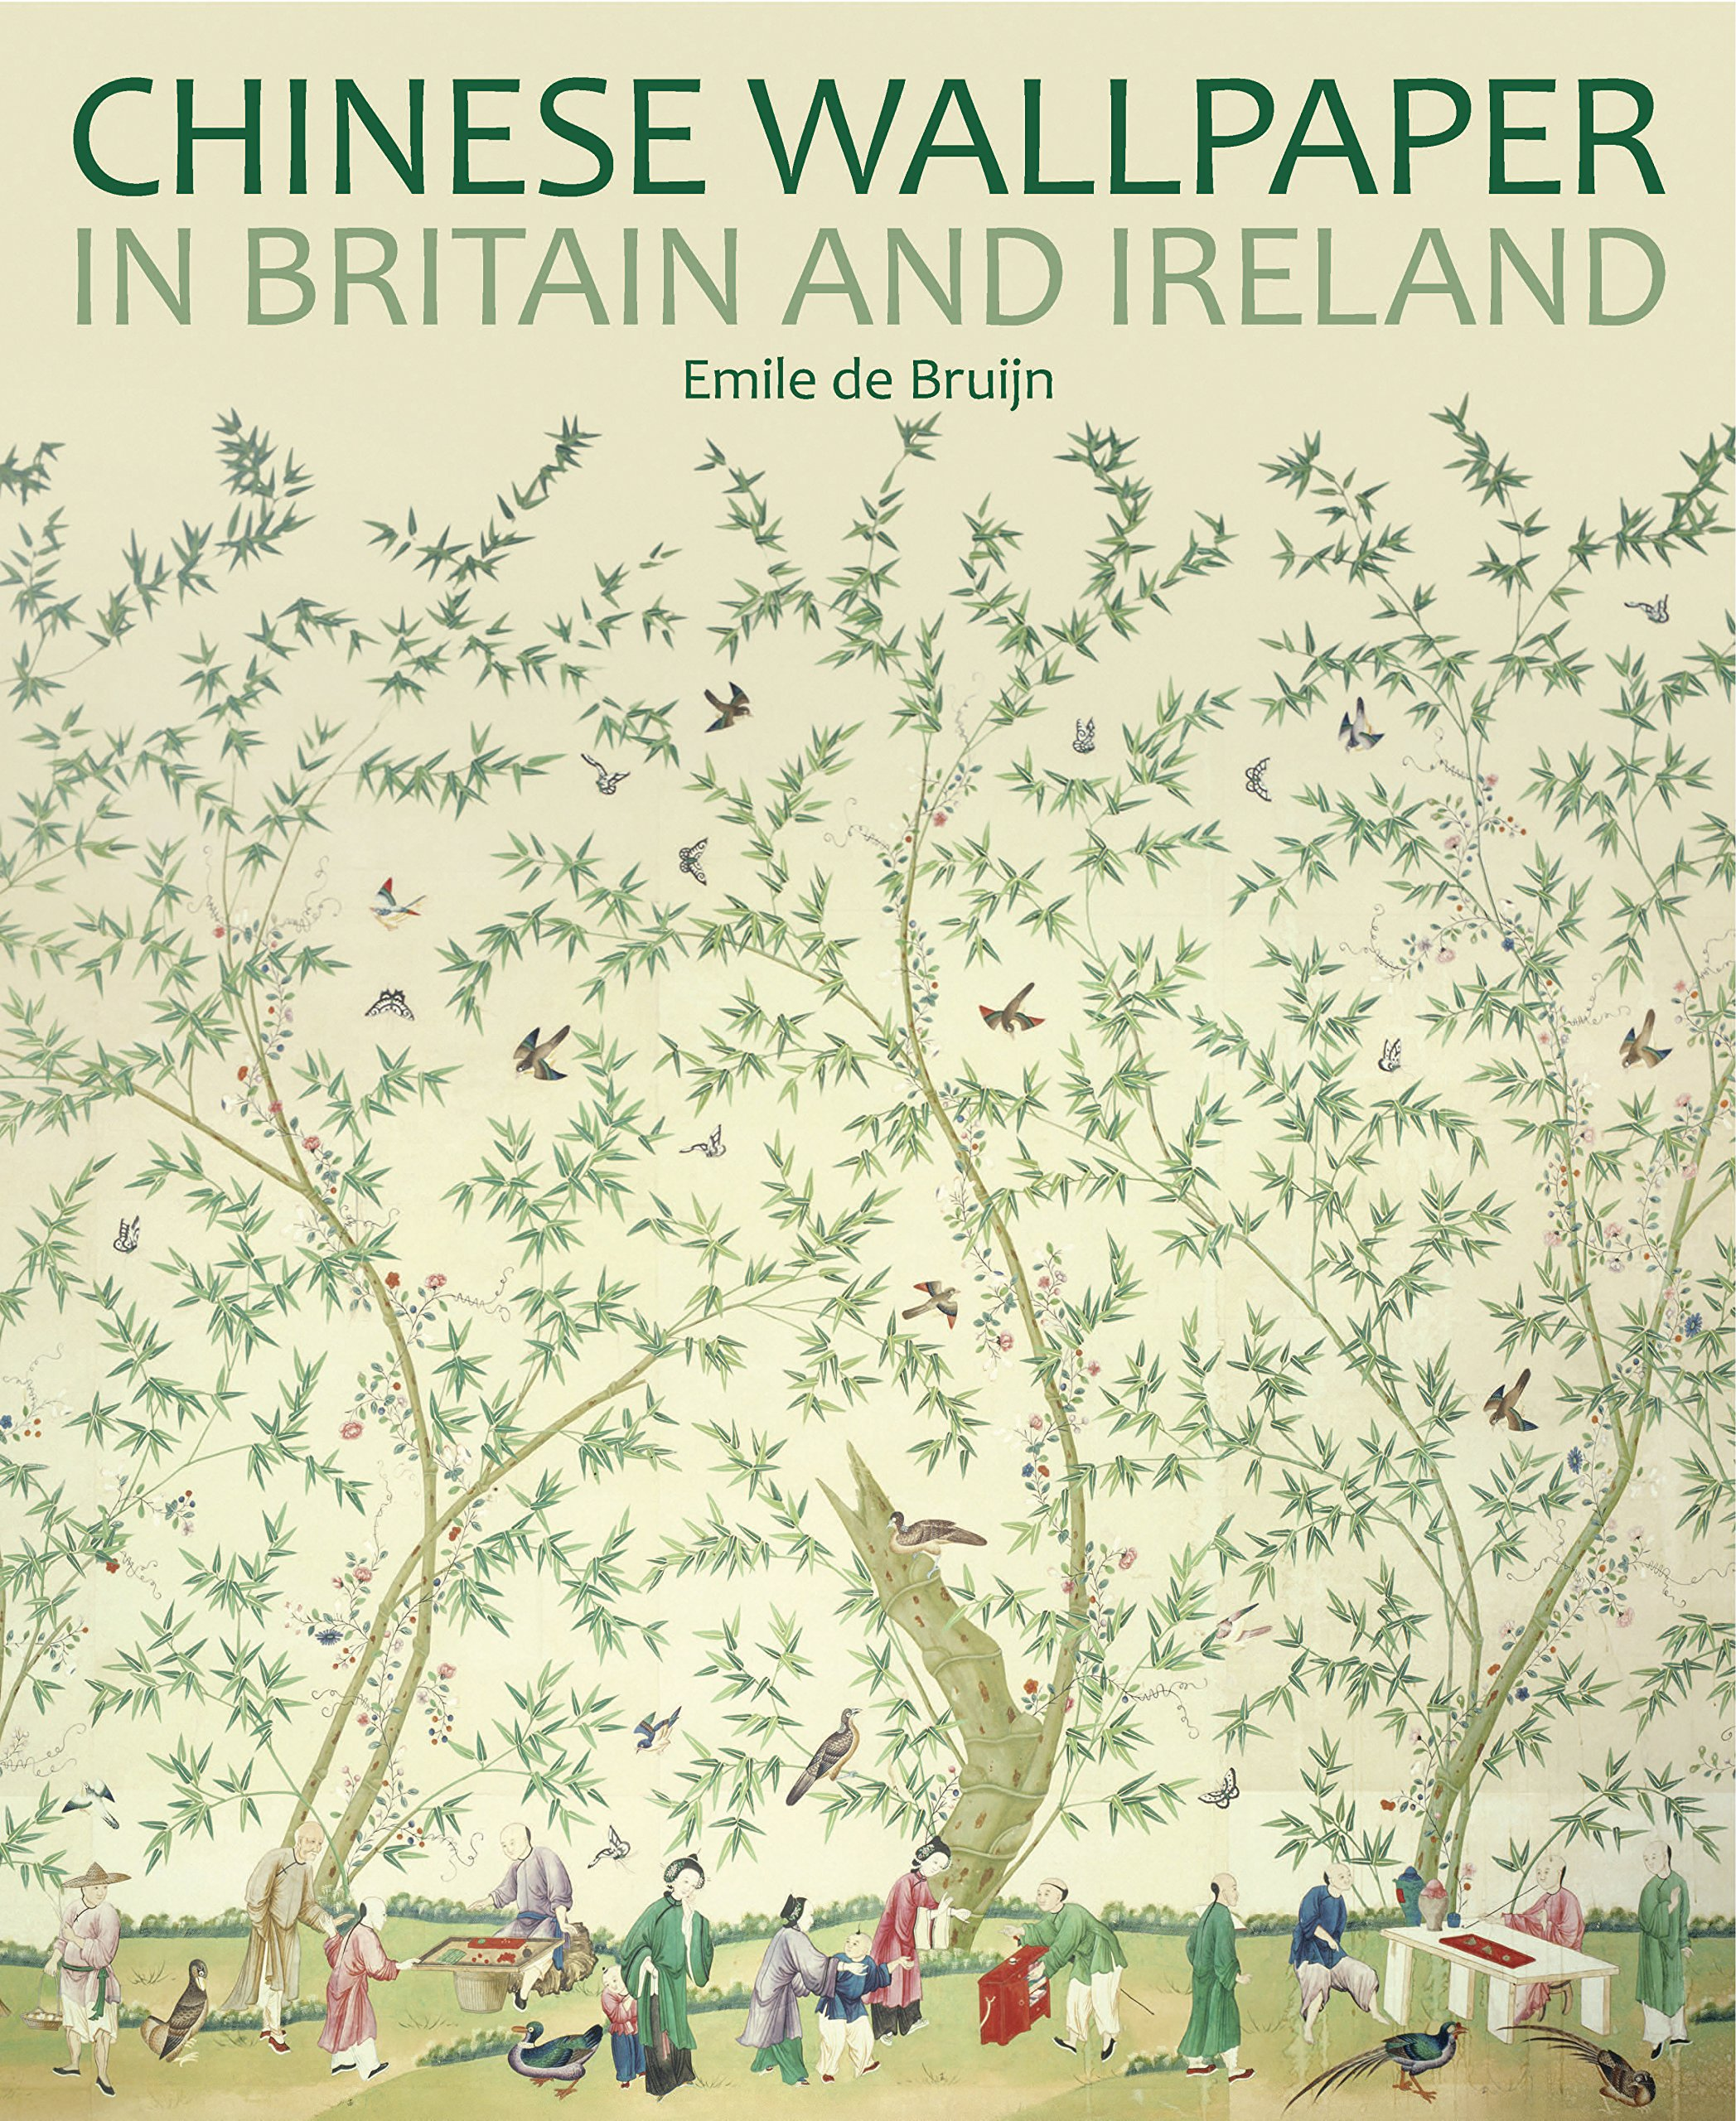 Chinese Wallpaper in Britain and Ireland: Amazon.co.uk: Emile de ...